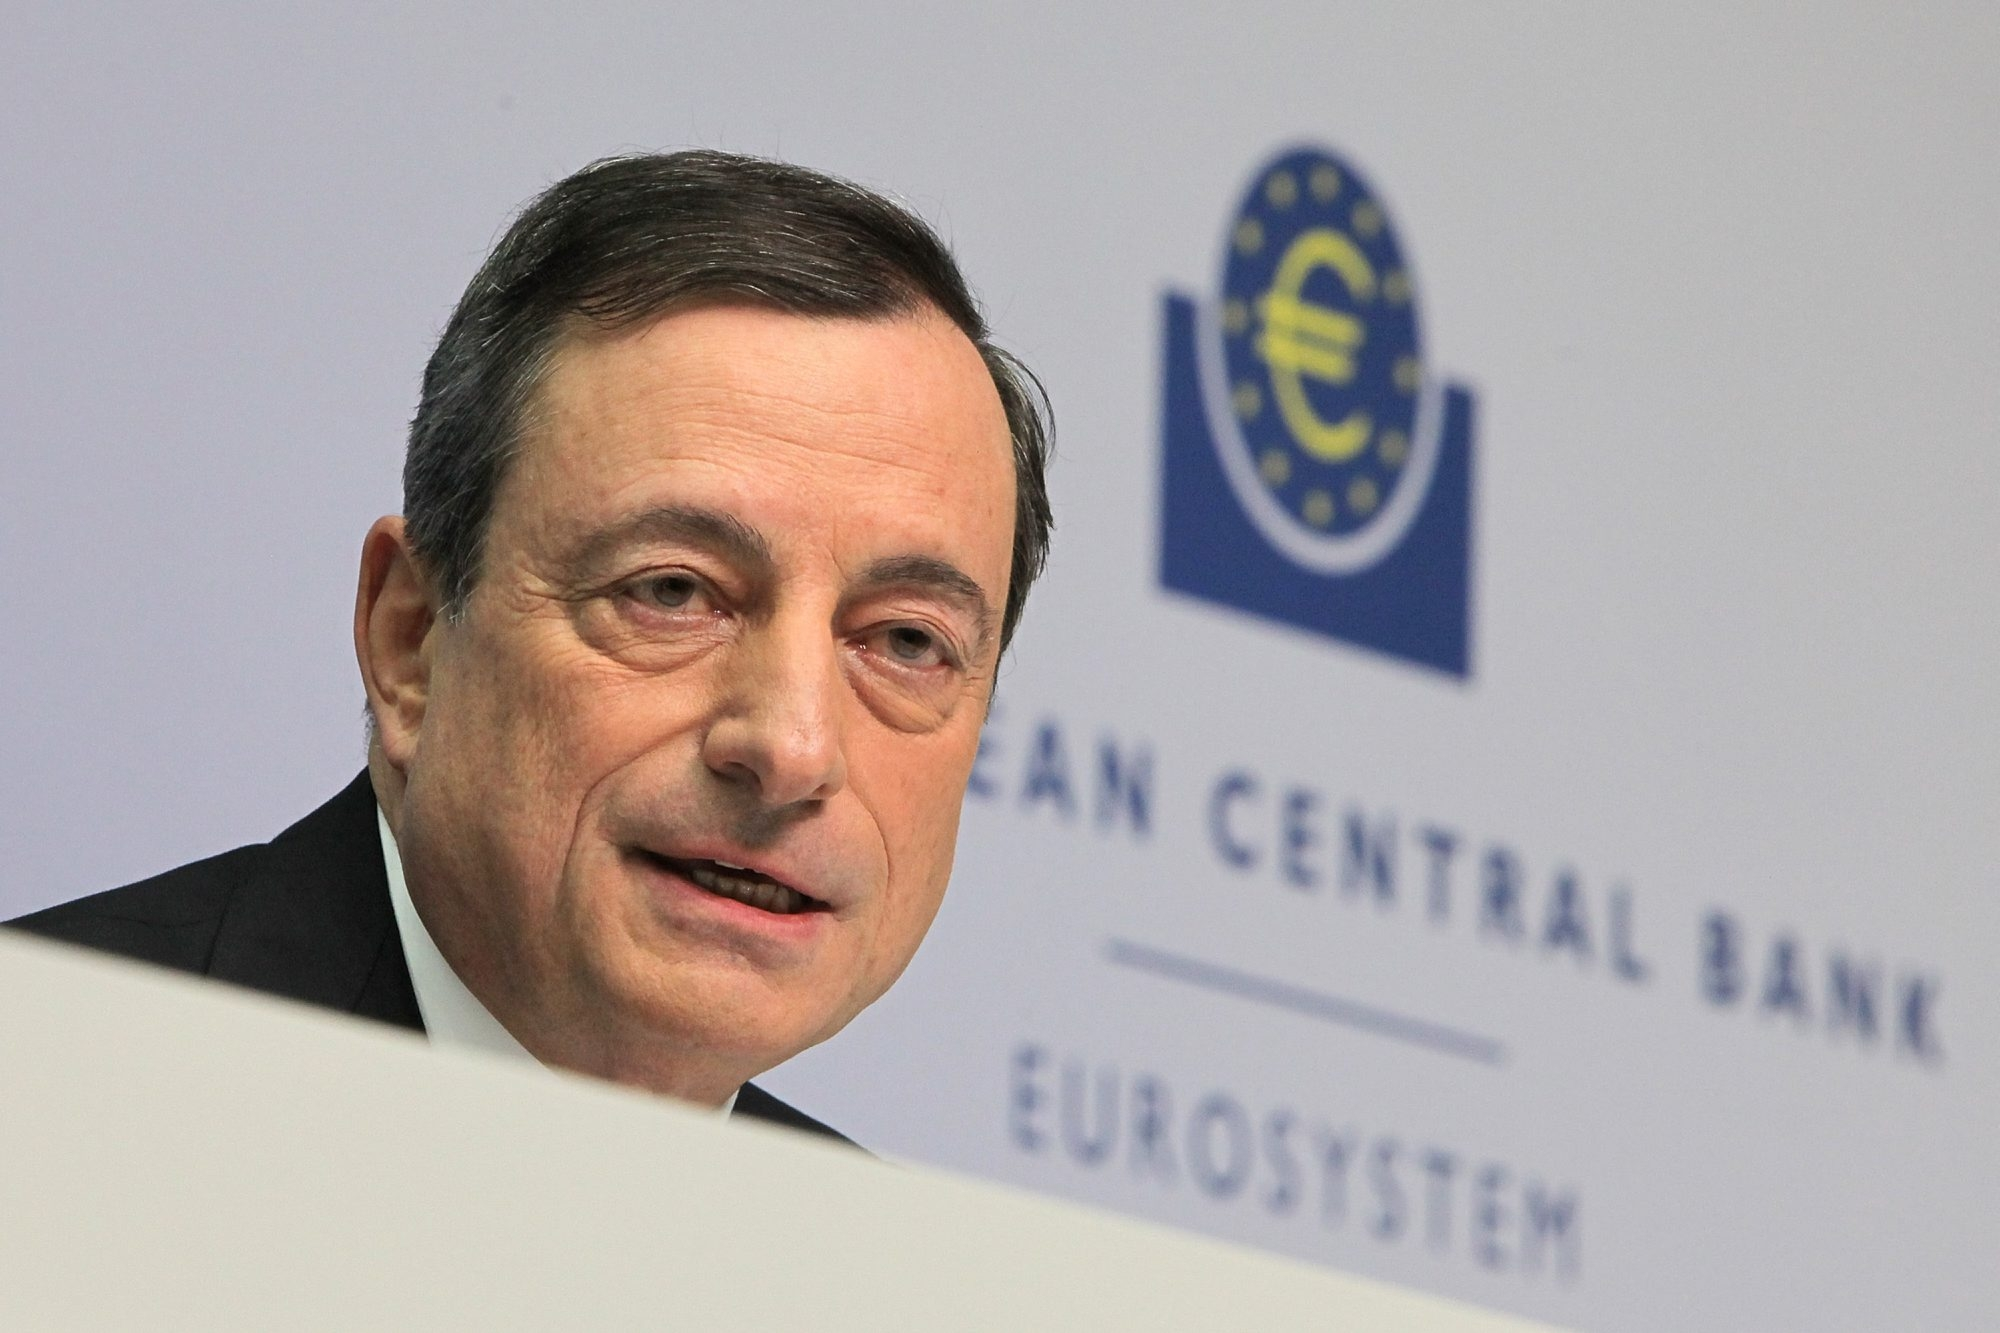 Mario Draghi, head of the European Central Bank, speaks to journalists following a meeting of the ECB governing board. The central bank announced an expanded stimulus program to counter the threat of deflation and boost a near-stagnant economy.